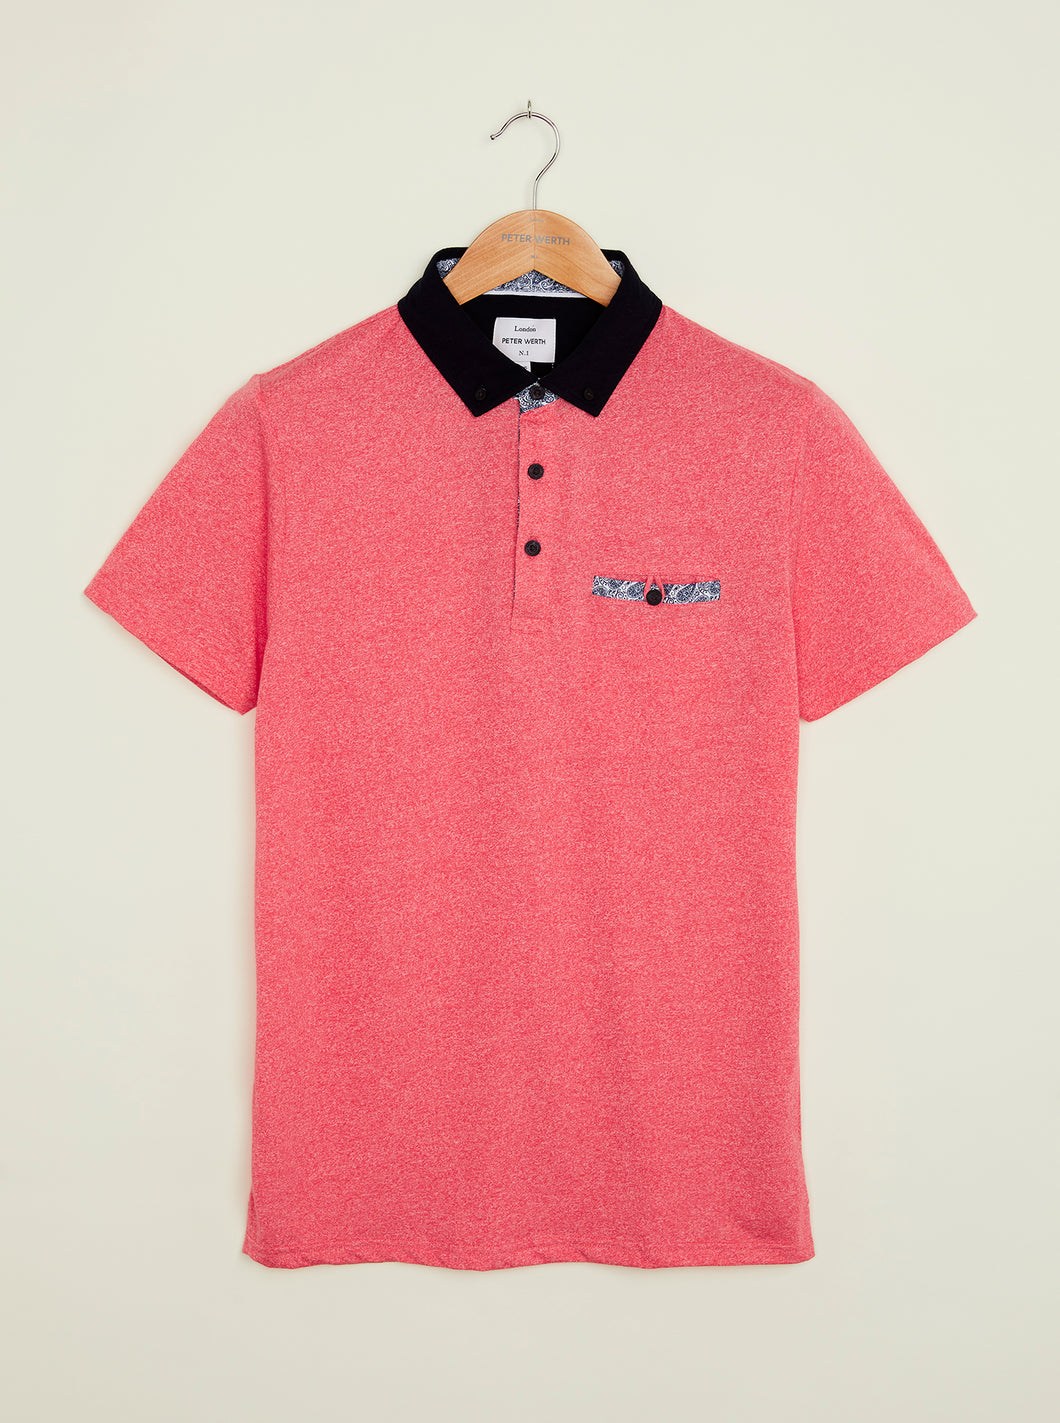 Dodworth Polo - Pink